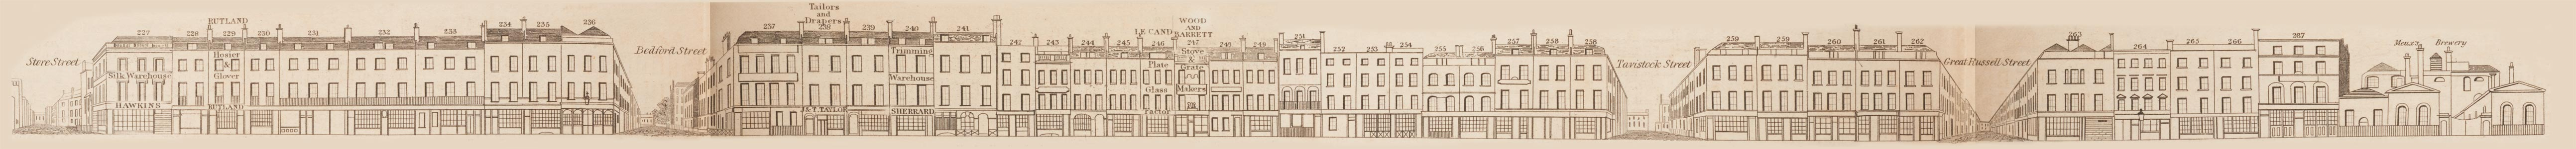 map - Tallis's London street views : No. 53. Tottenham Court Road, division 3 (east)